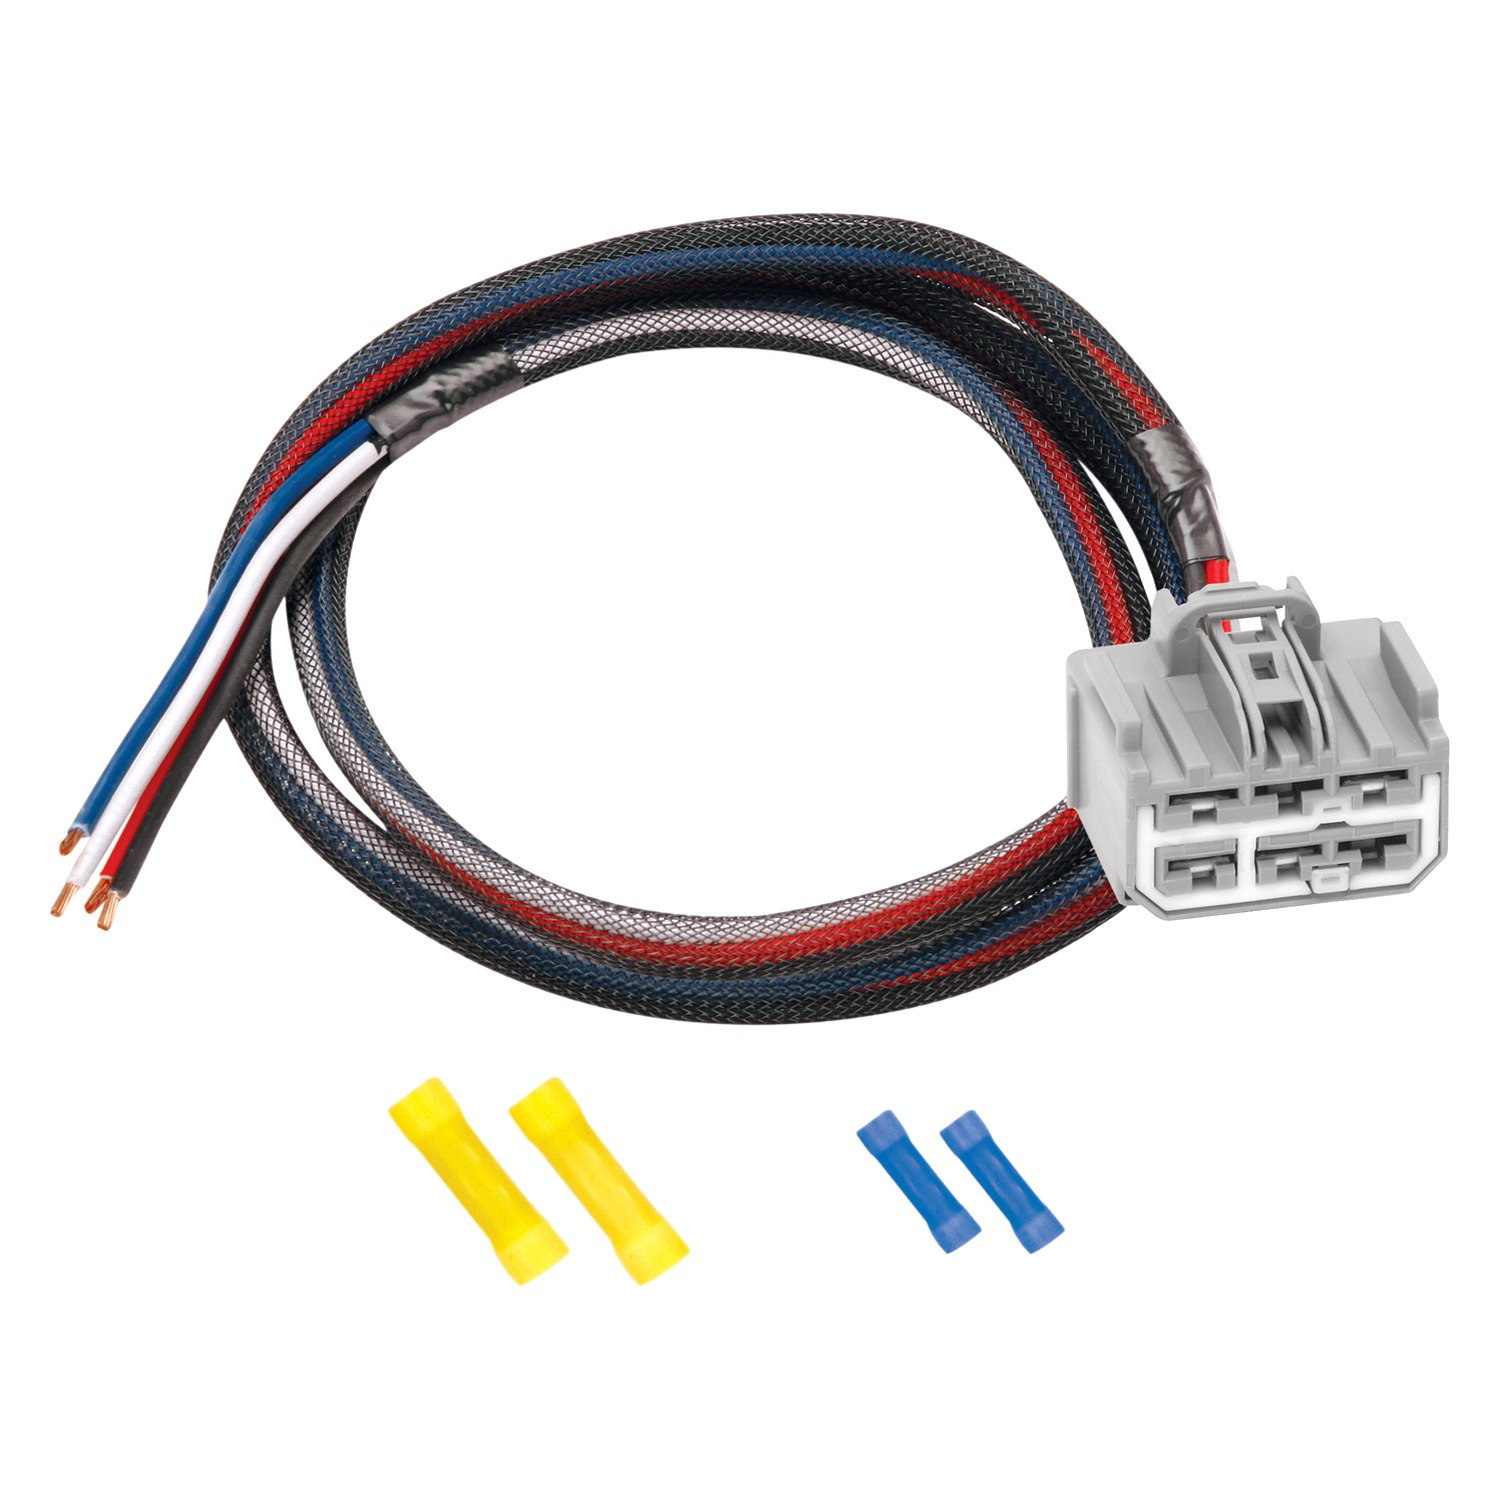 Gm Trailer Plug Wiring Harness Diagrams Chevrolet Traverse Diagram Tekonsha U00ae Chevy With Factory 7 Way 2009 2017 Radio 2500hd